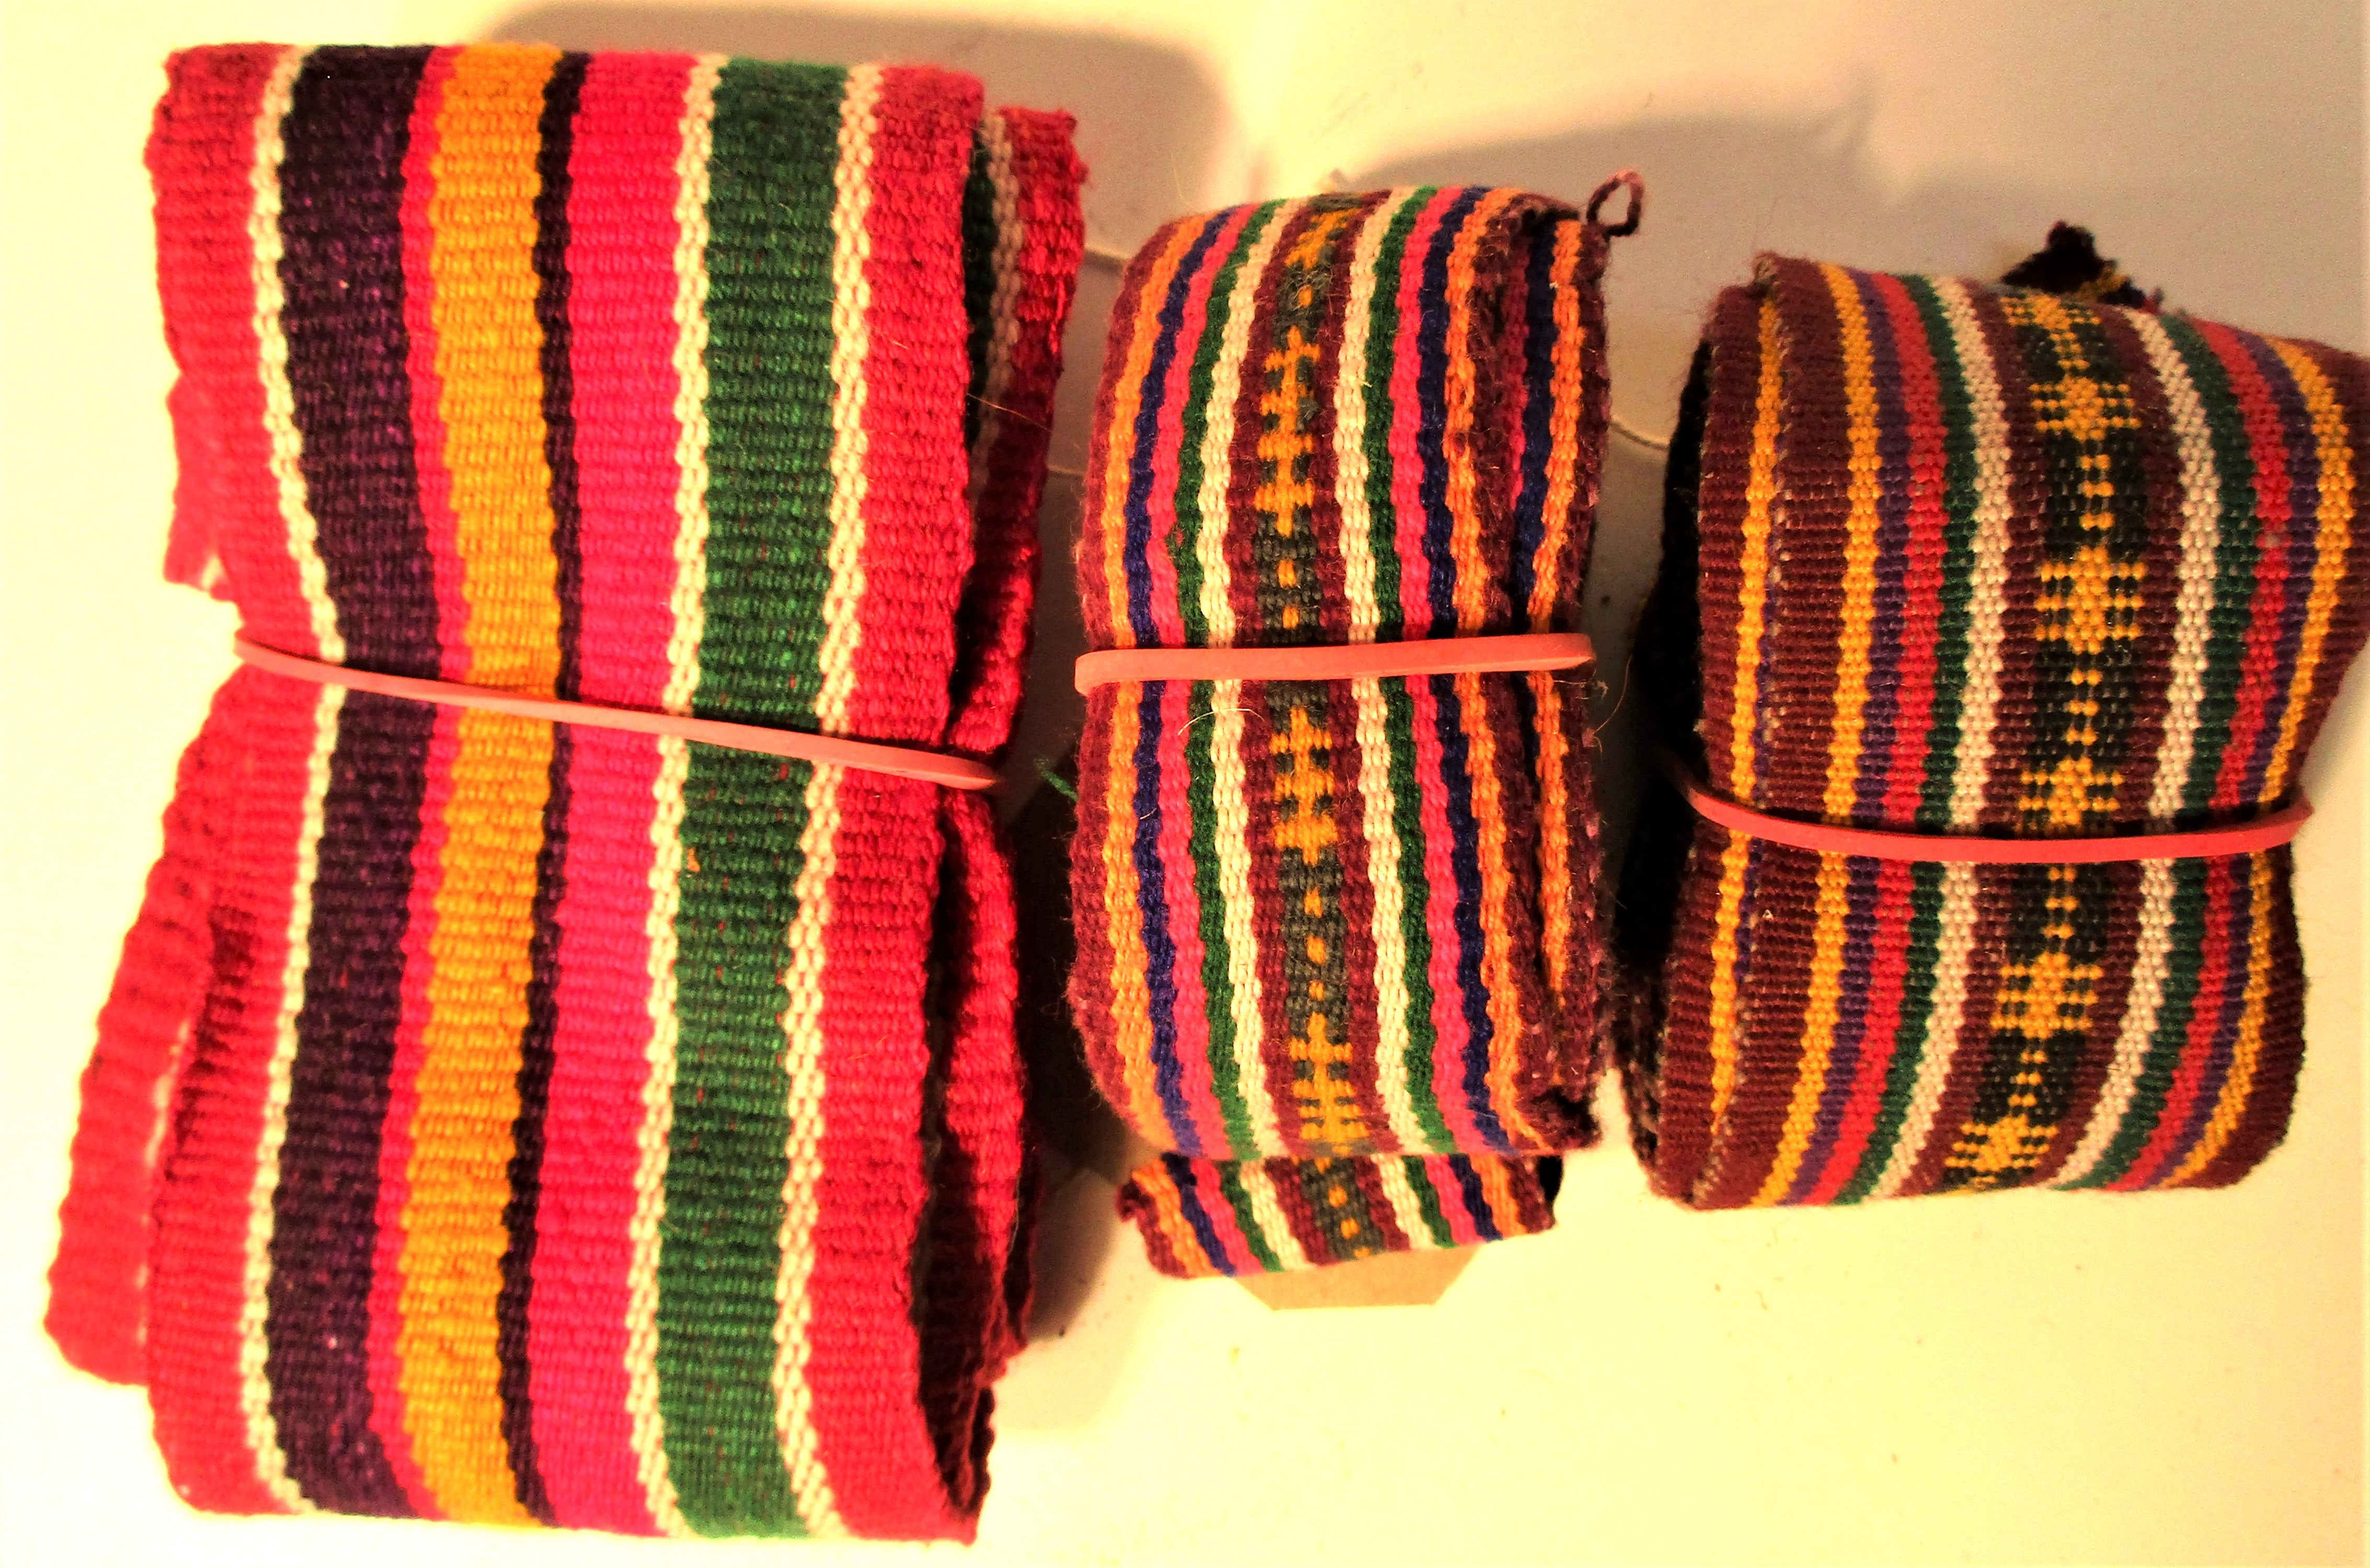 3x Woven bands. When you have to transport your goods and house hold items on a donkey or horse